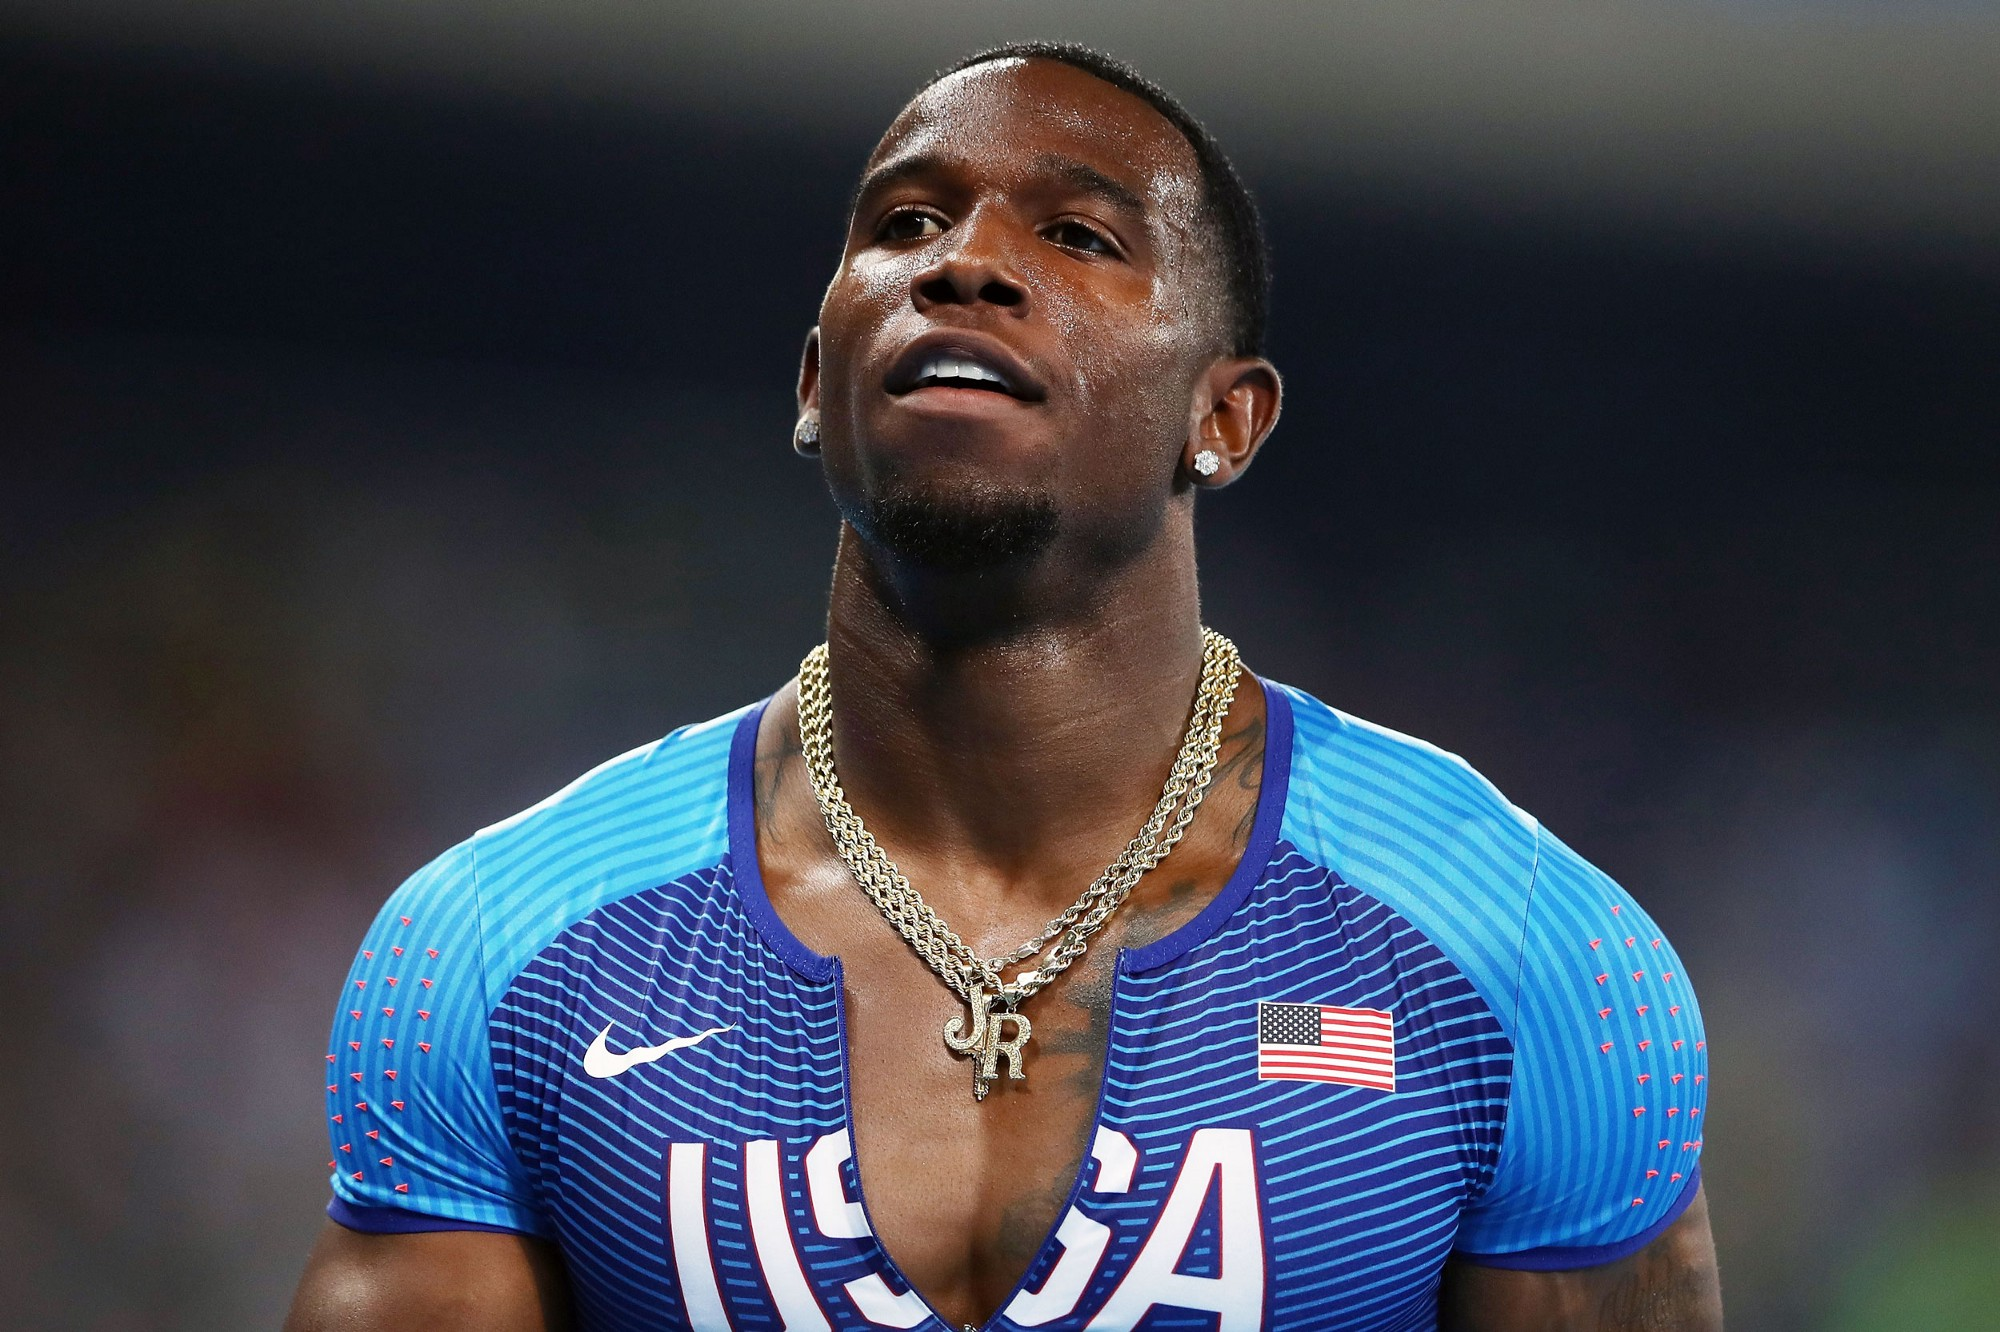 A USA  track athlete said kissing led to failed drug test